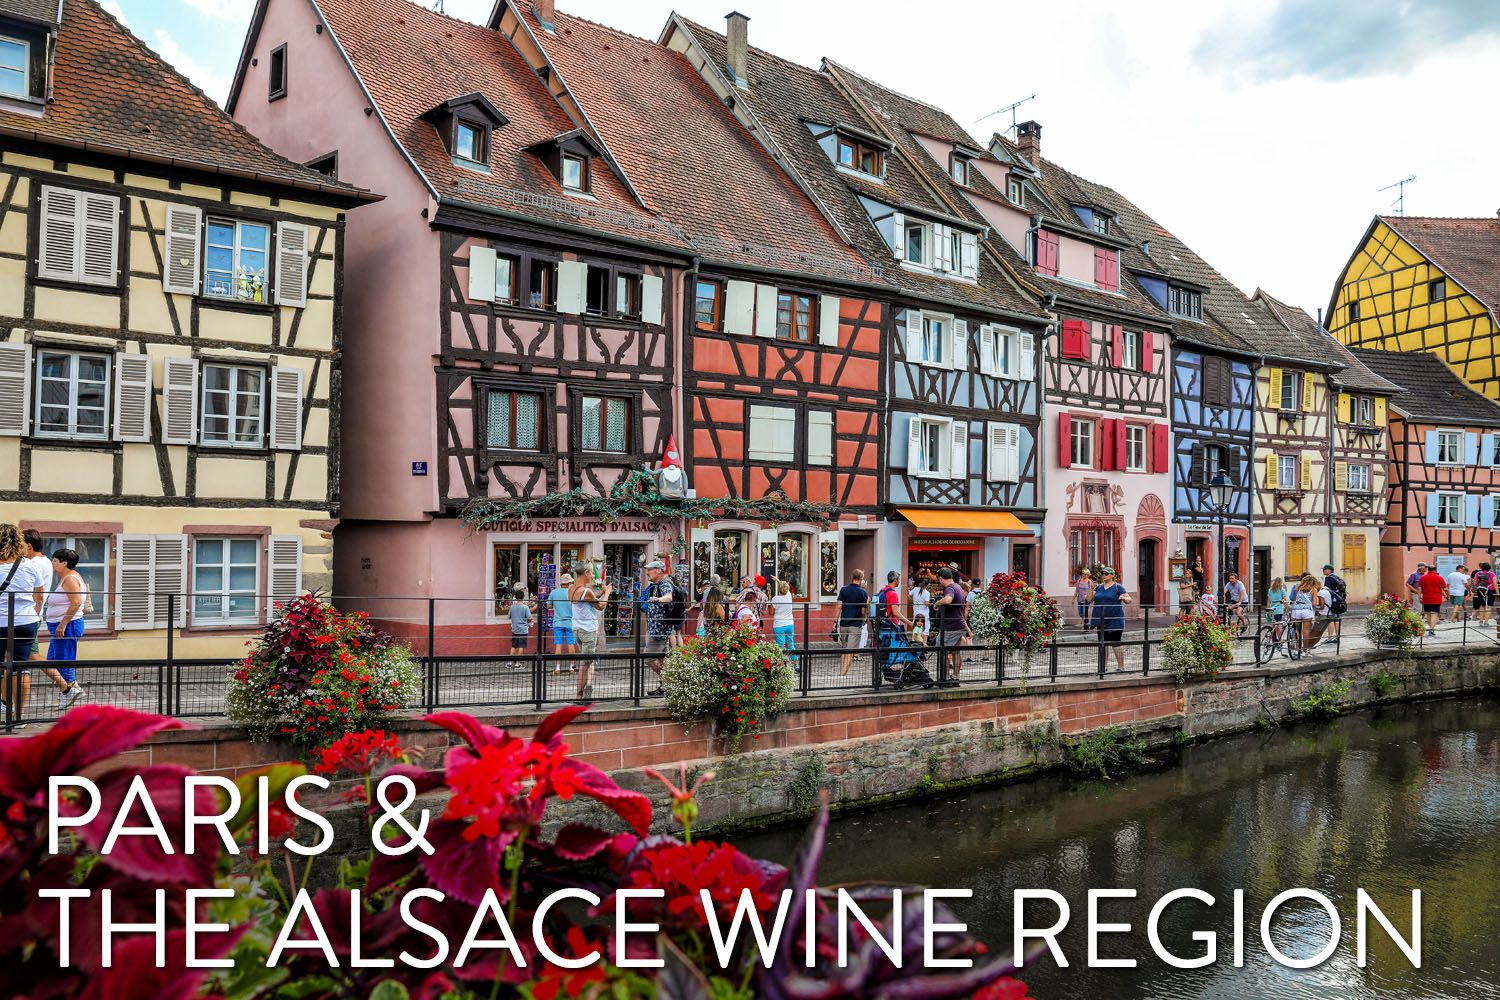 Paris and Alsace